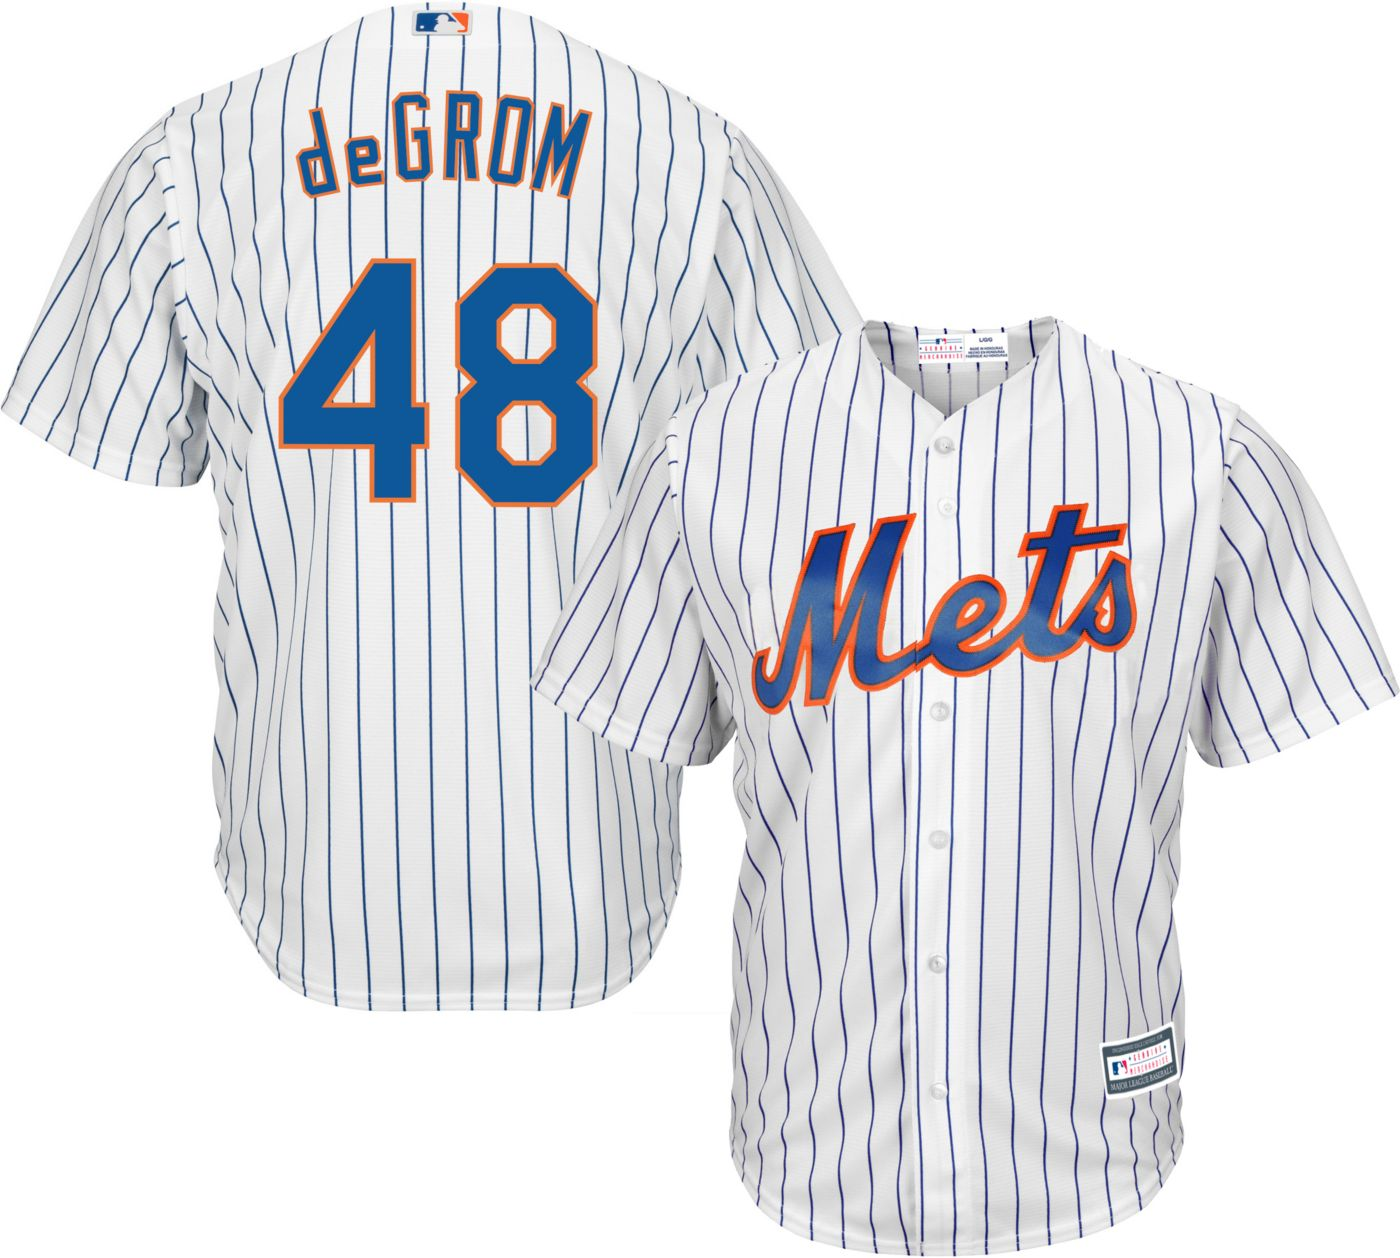 Youth Replica New York Mets Jacob deGrom #48 Home White Jersey